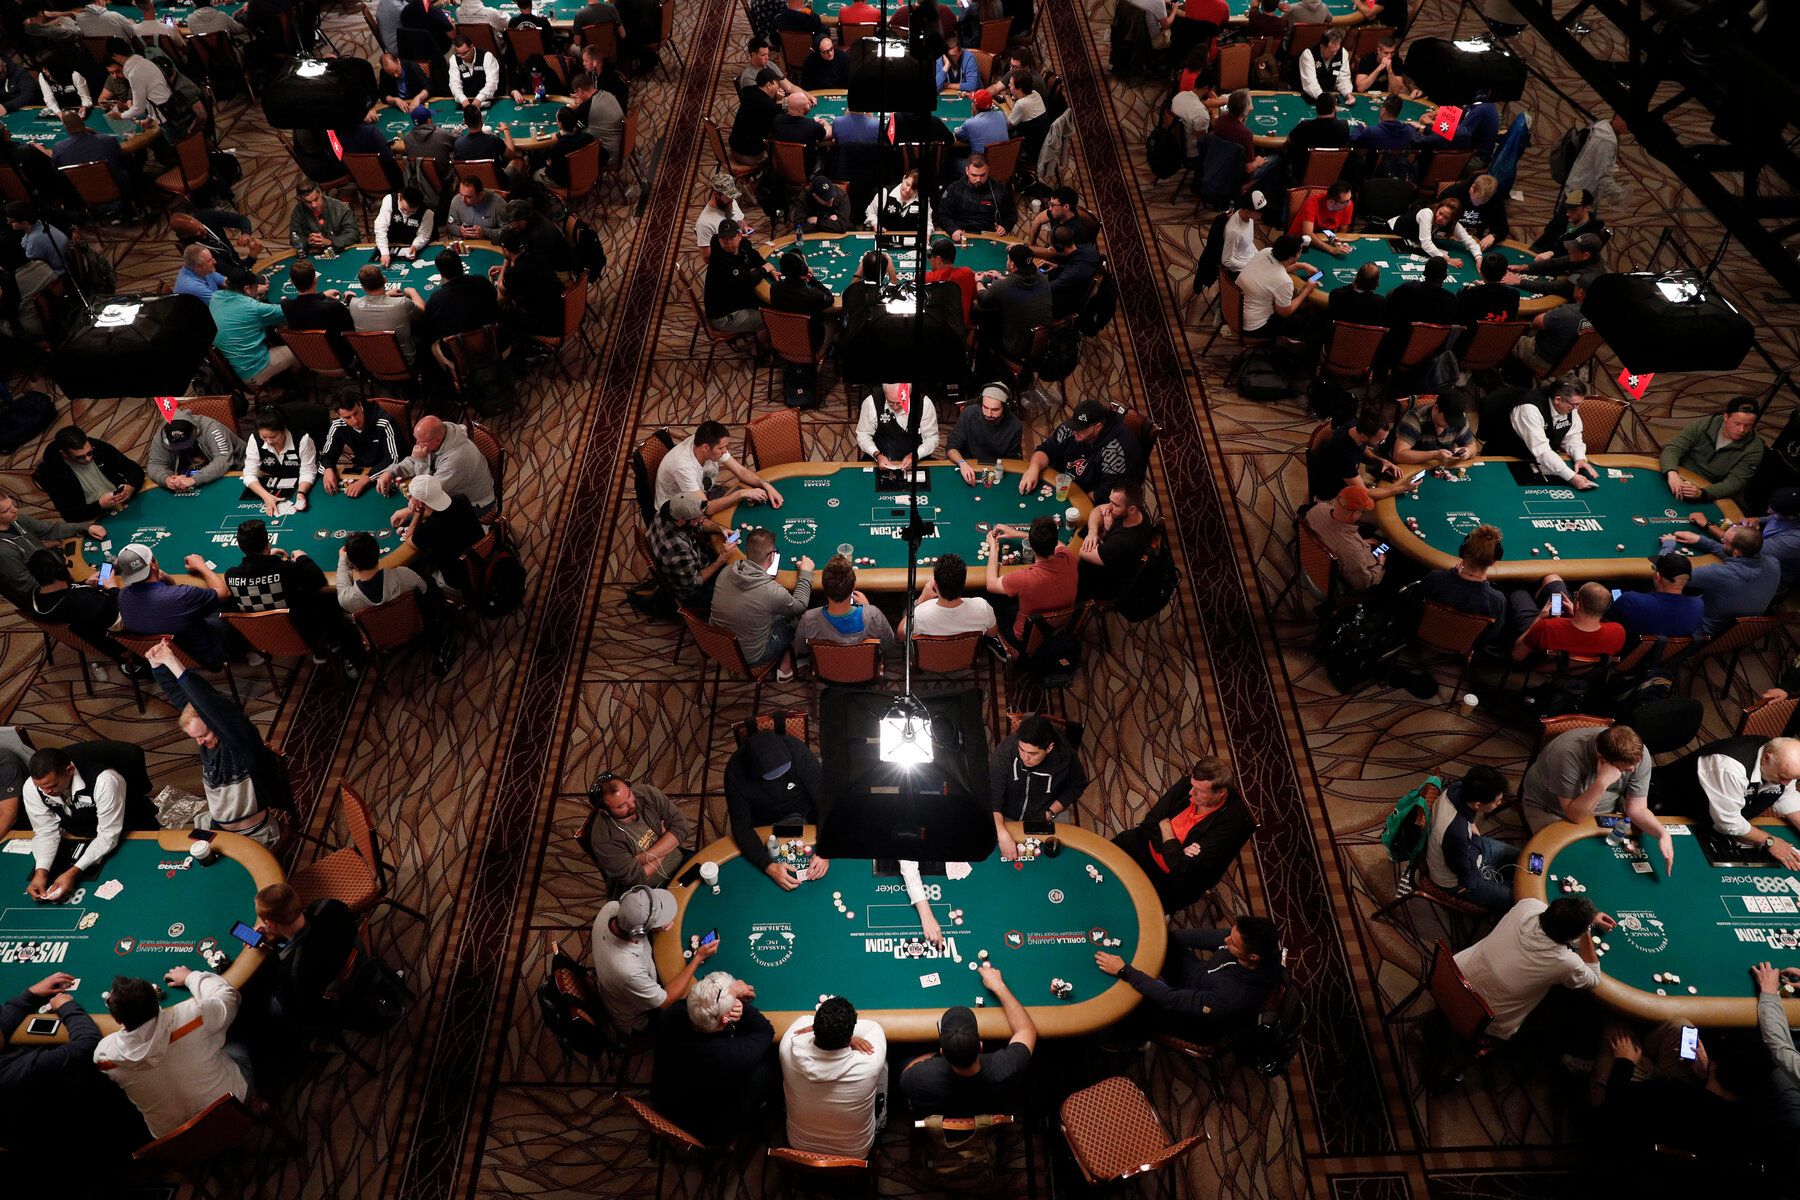 To Play Poker in a Pandemic, Americans Flee the U.S. - The New York Times